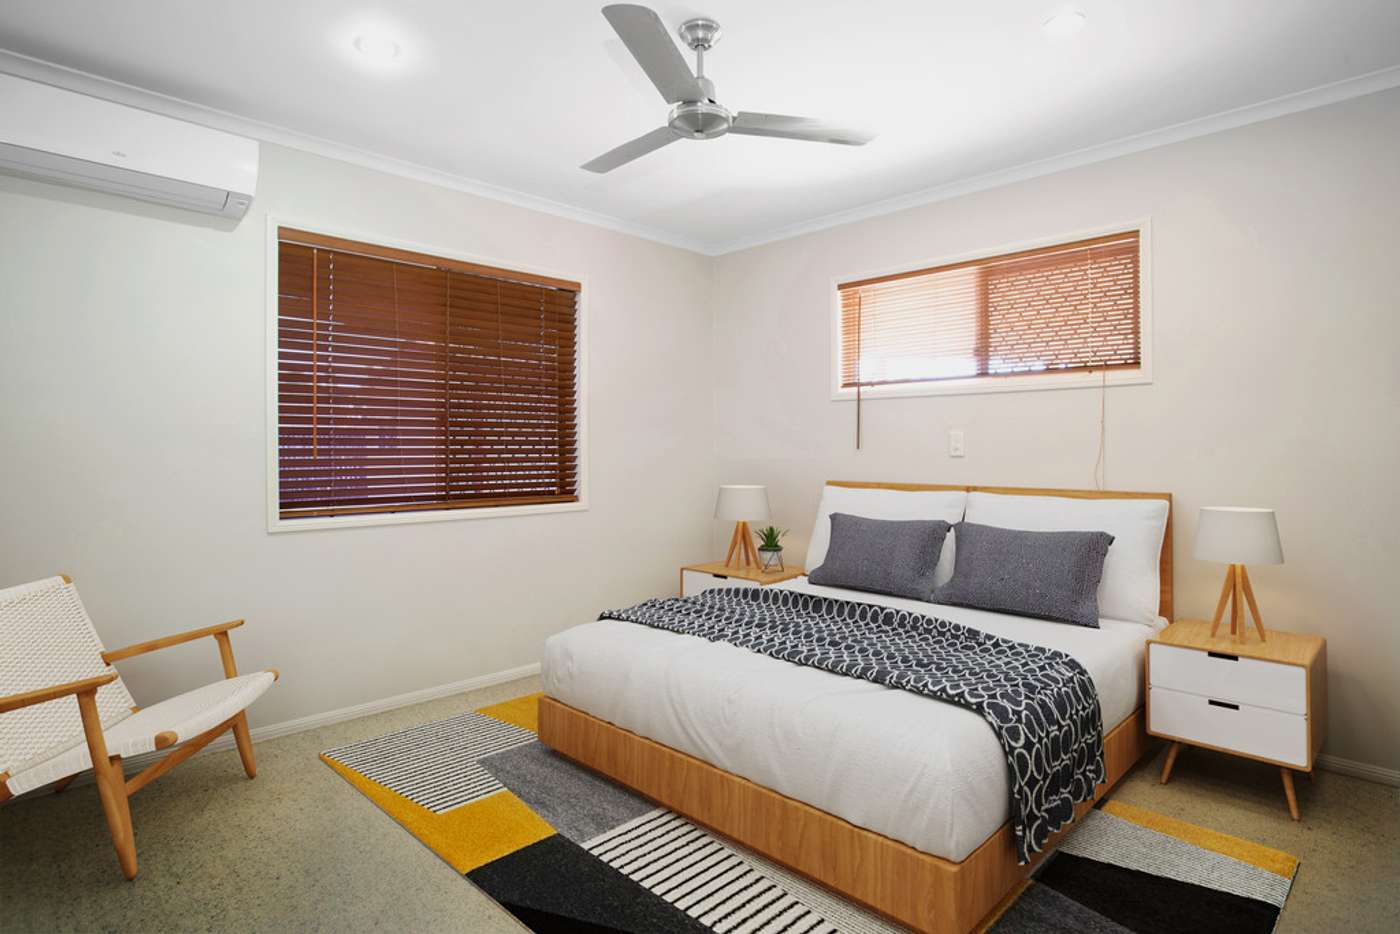 Sixth view of Homely house listing, 22 Argyle Court, Beaconsfield QLD 4740